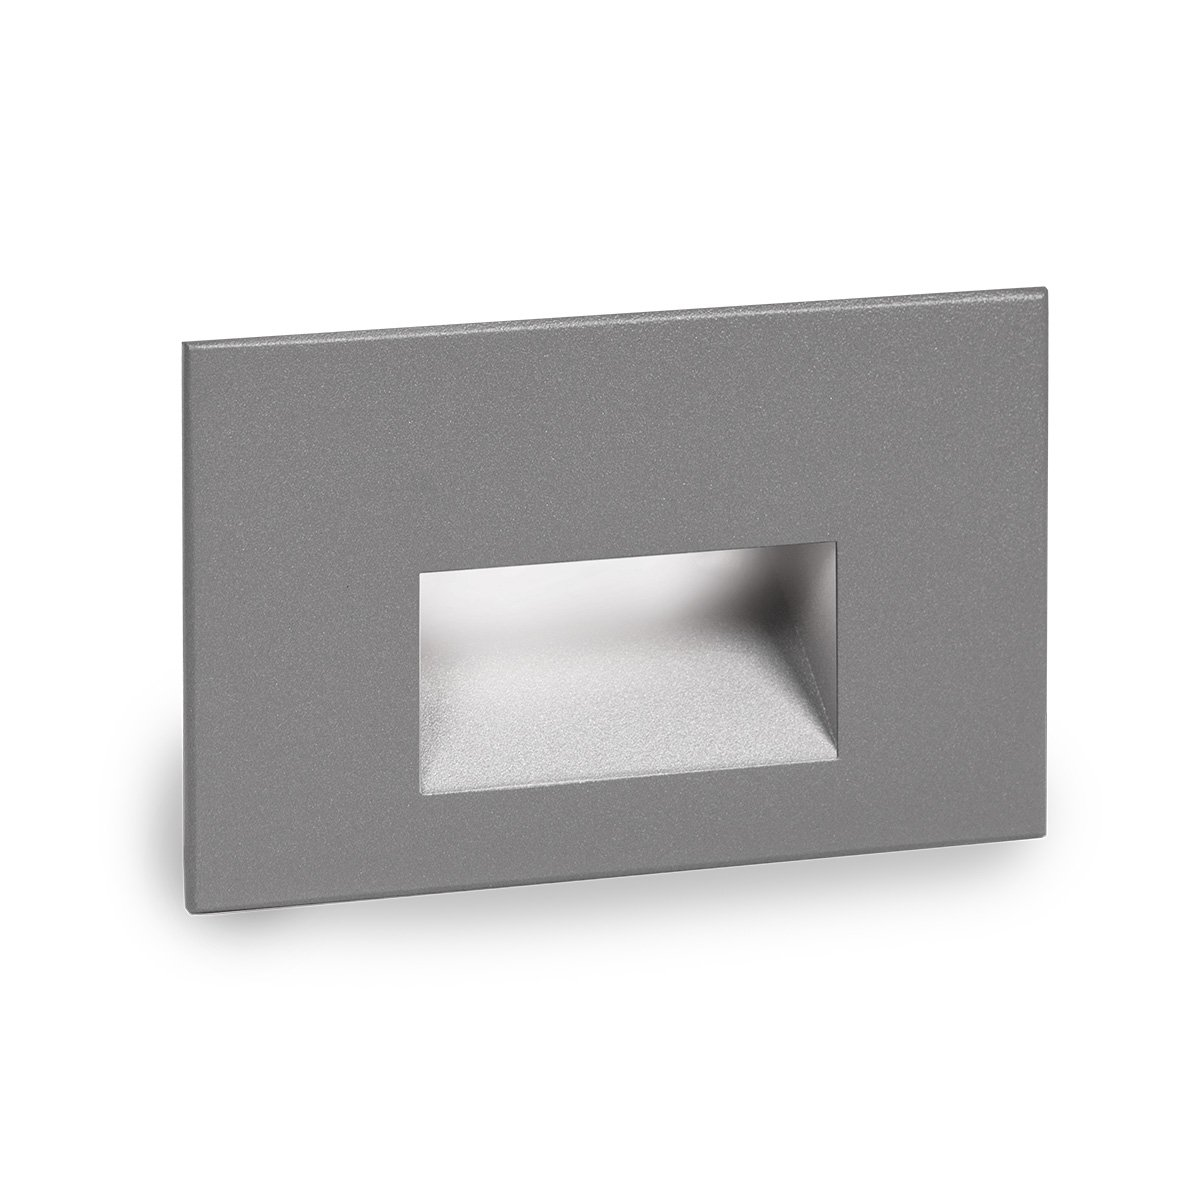 WAC Lighting WL-LED100-C-GH Ledme Horizontal Step and Wall Light 120V 3000K, Graphite by WAC Lighting